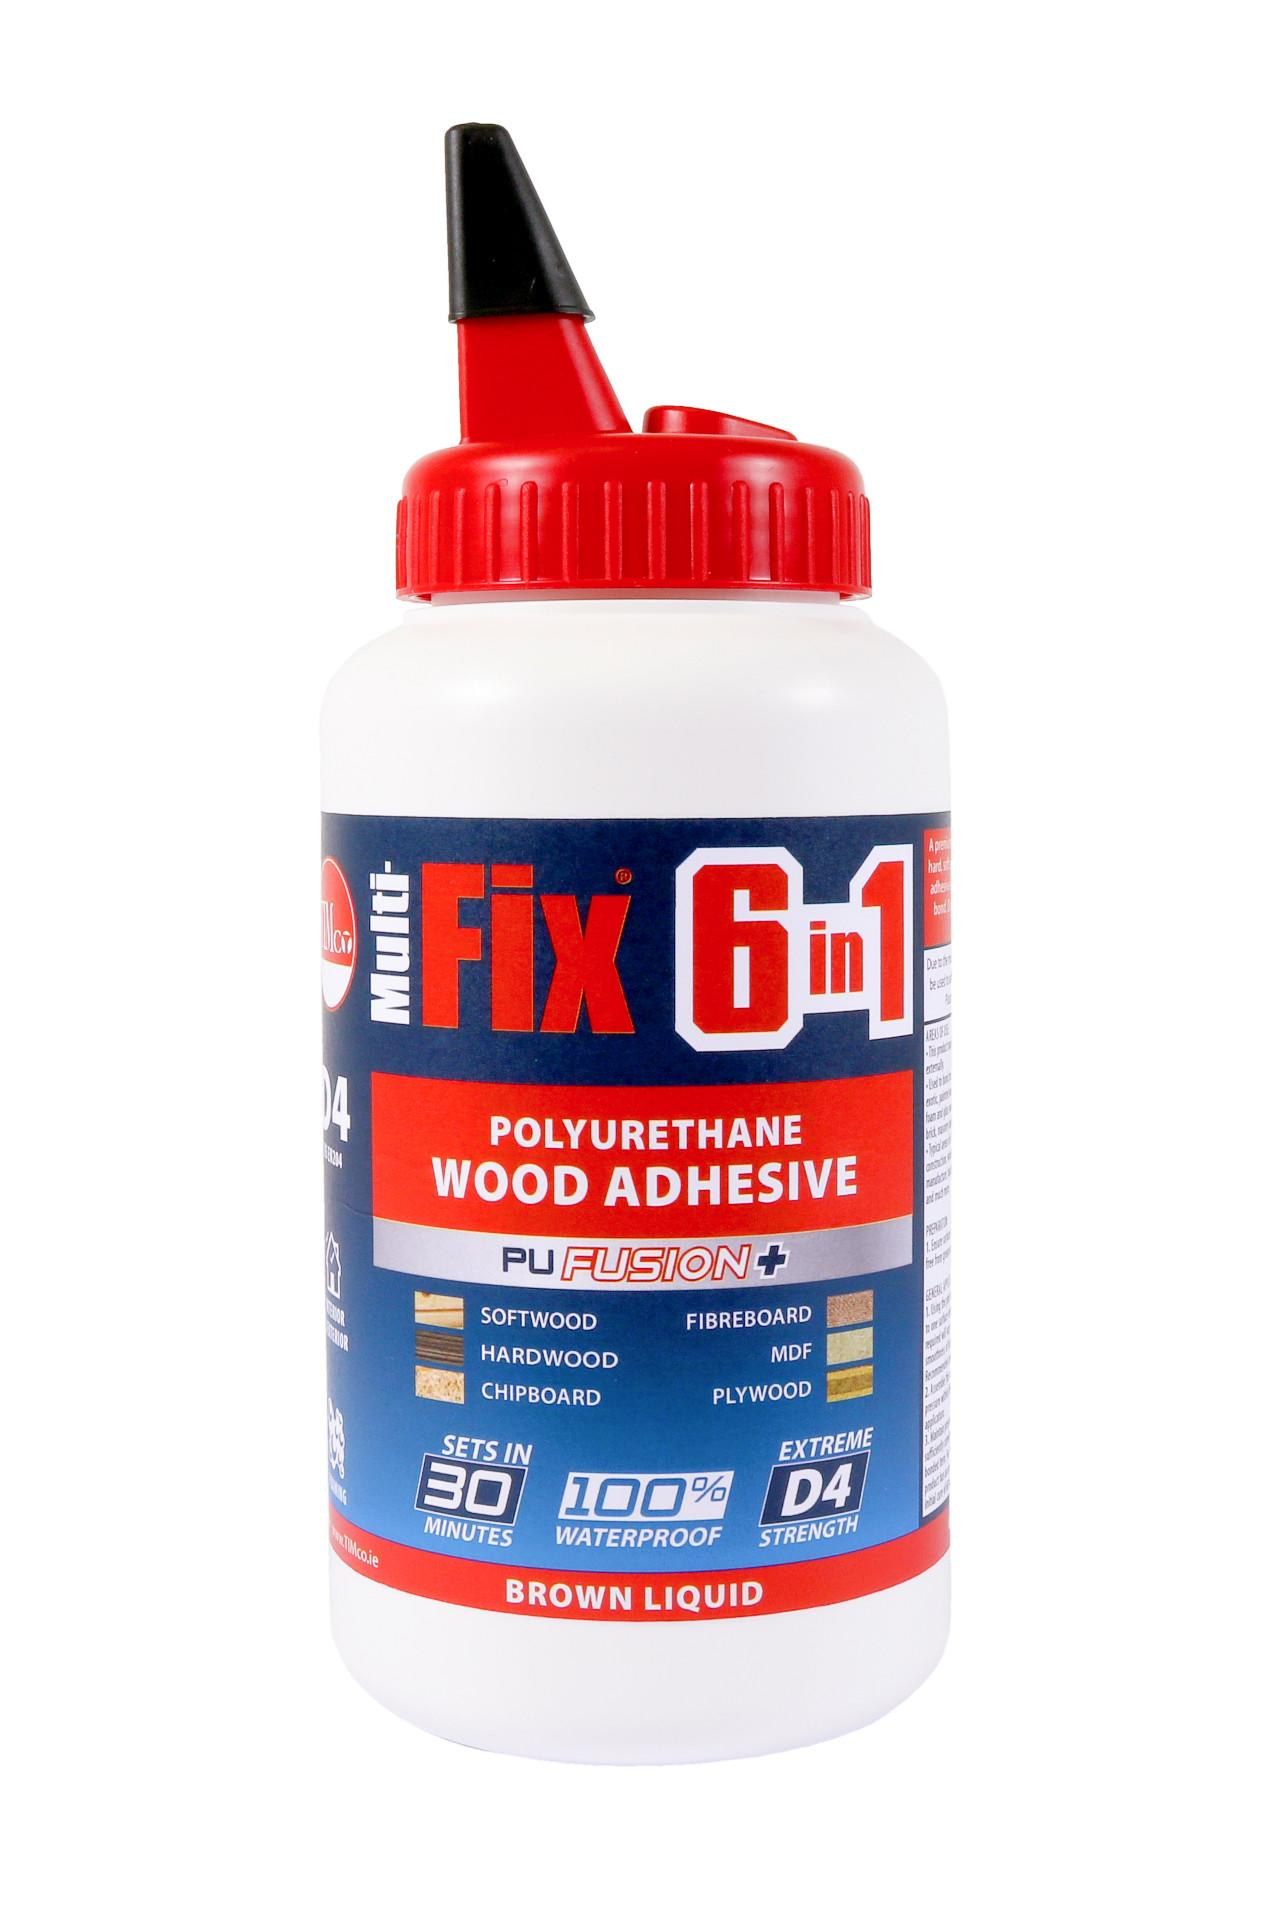 Multi-Fix 6 in 1 PU Wood Adhesive 750g - 30 Minutes